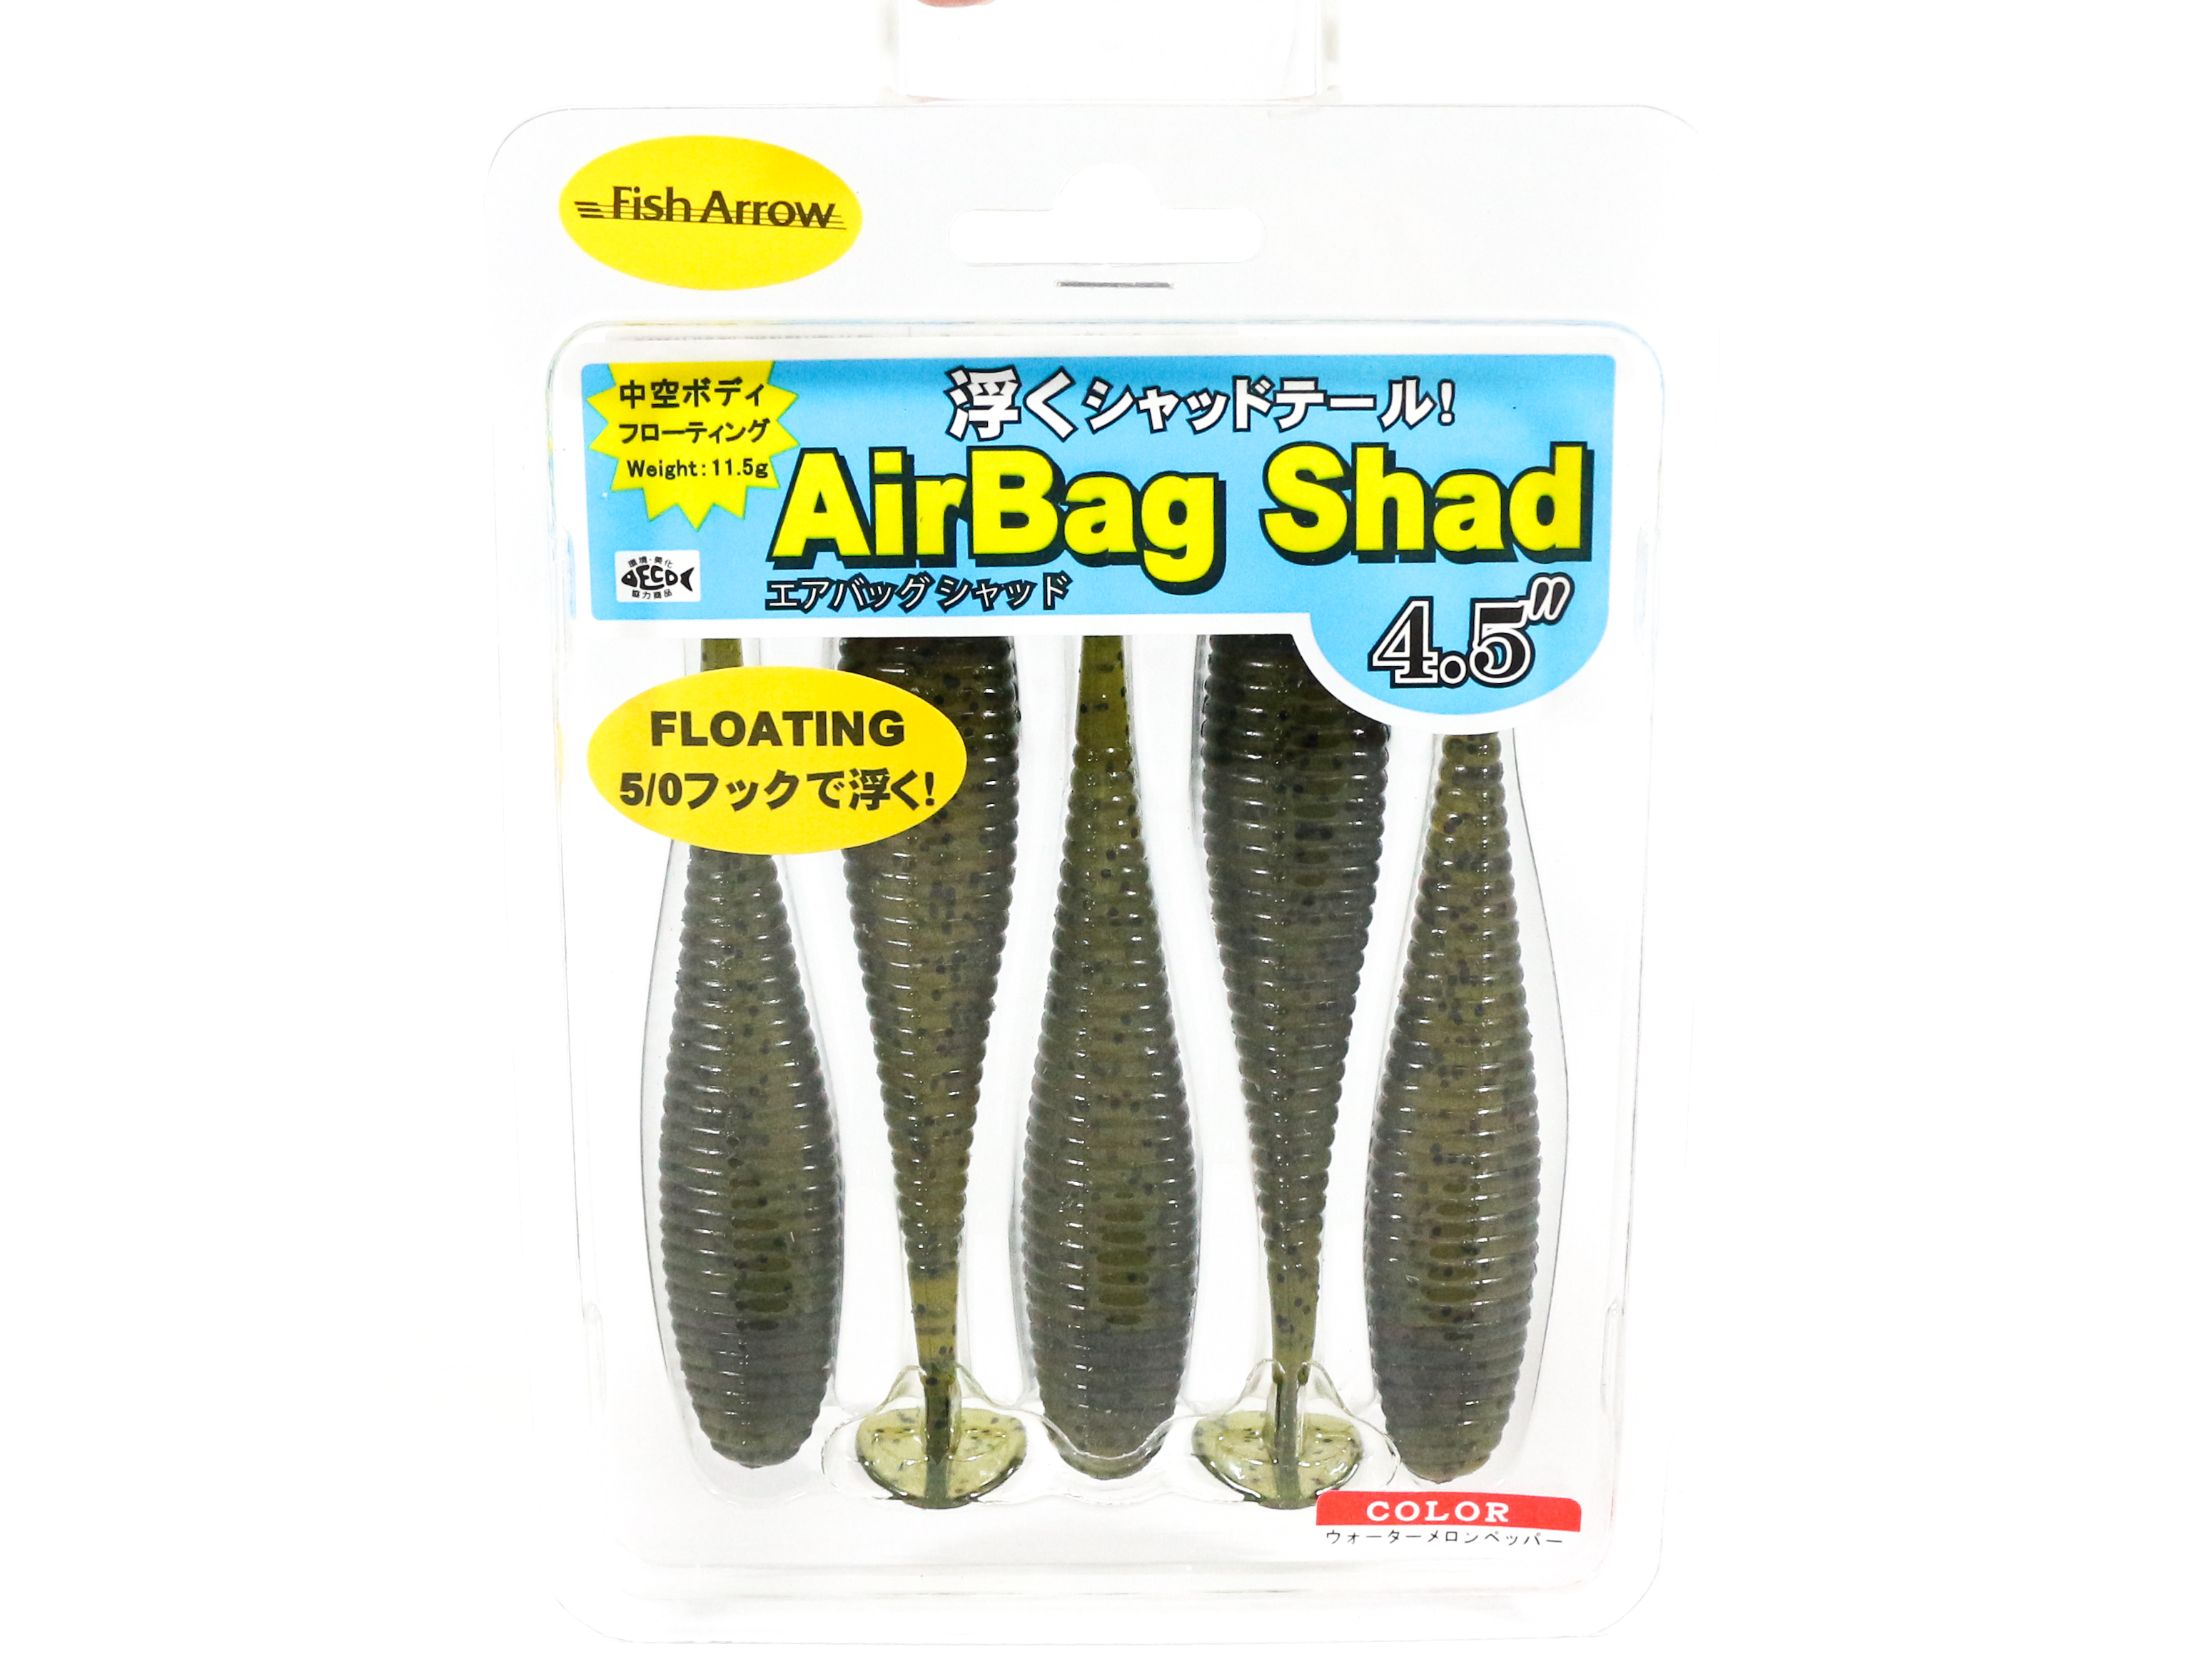 Fish Arrow Soft Lure Air Bag Shad 4.5 Inch 5 Piece per pack #02 (0752)